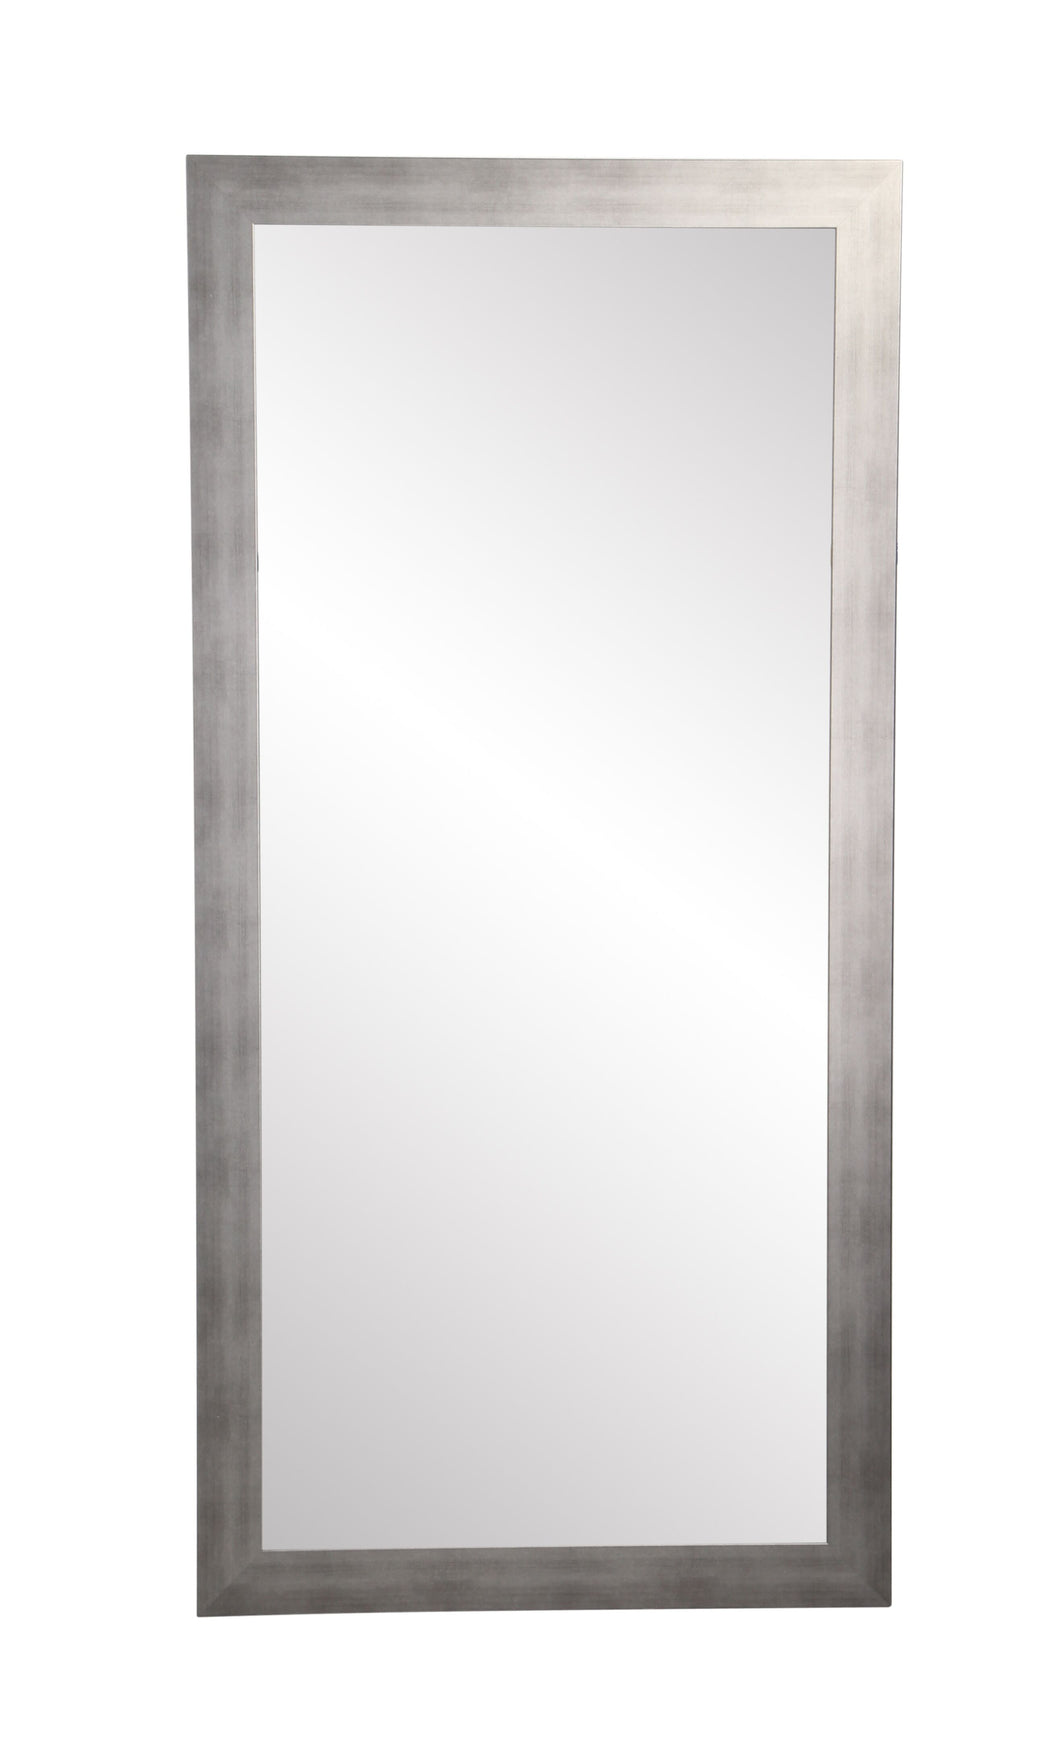 Timberwolf Silver Framed Floor Leaning Tall  Mirror 32''x 66'' Brushed Silver